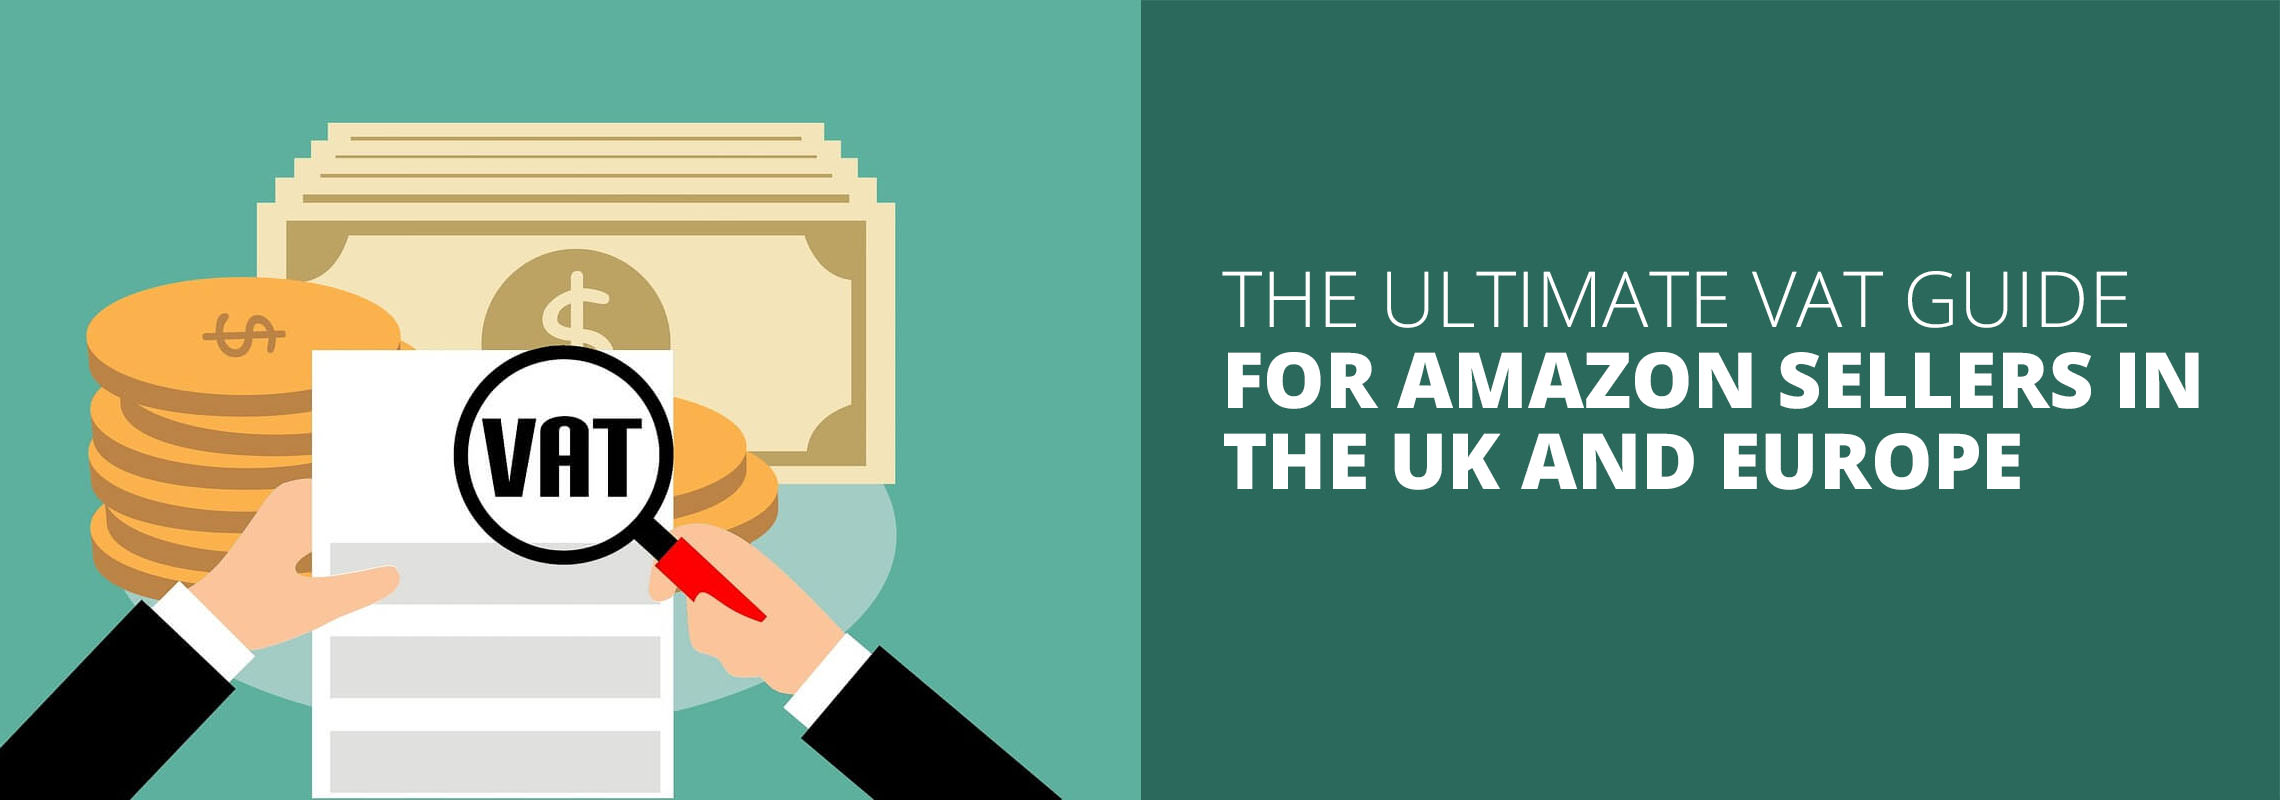 The Ultimate VAT Guide for Amazon Sellers in the UK and Europe